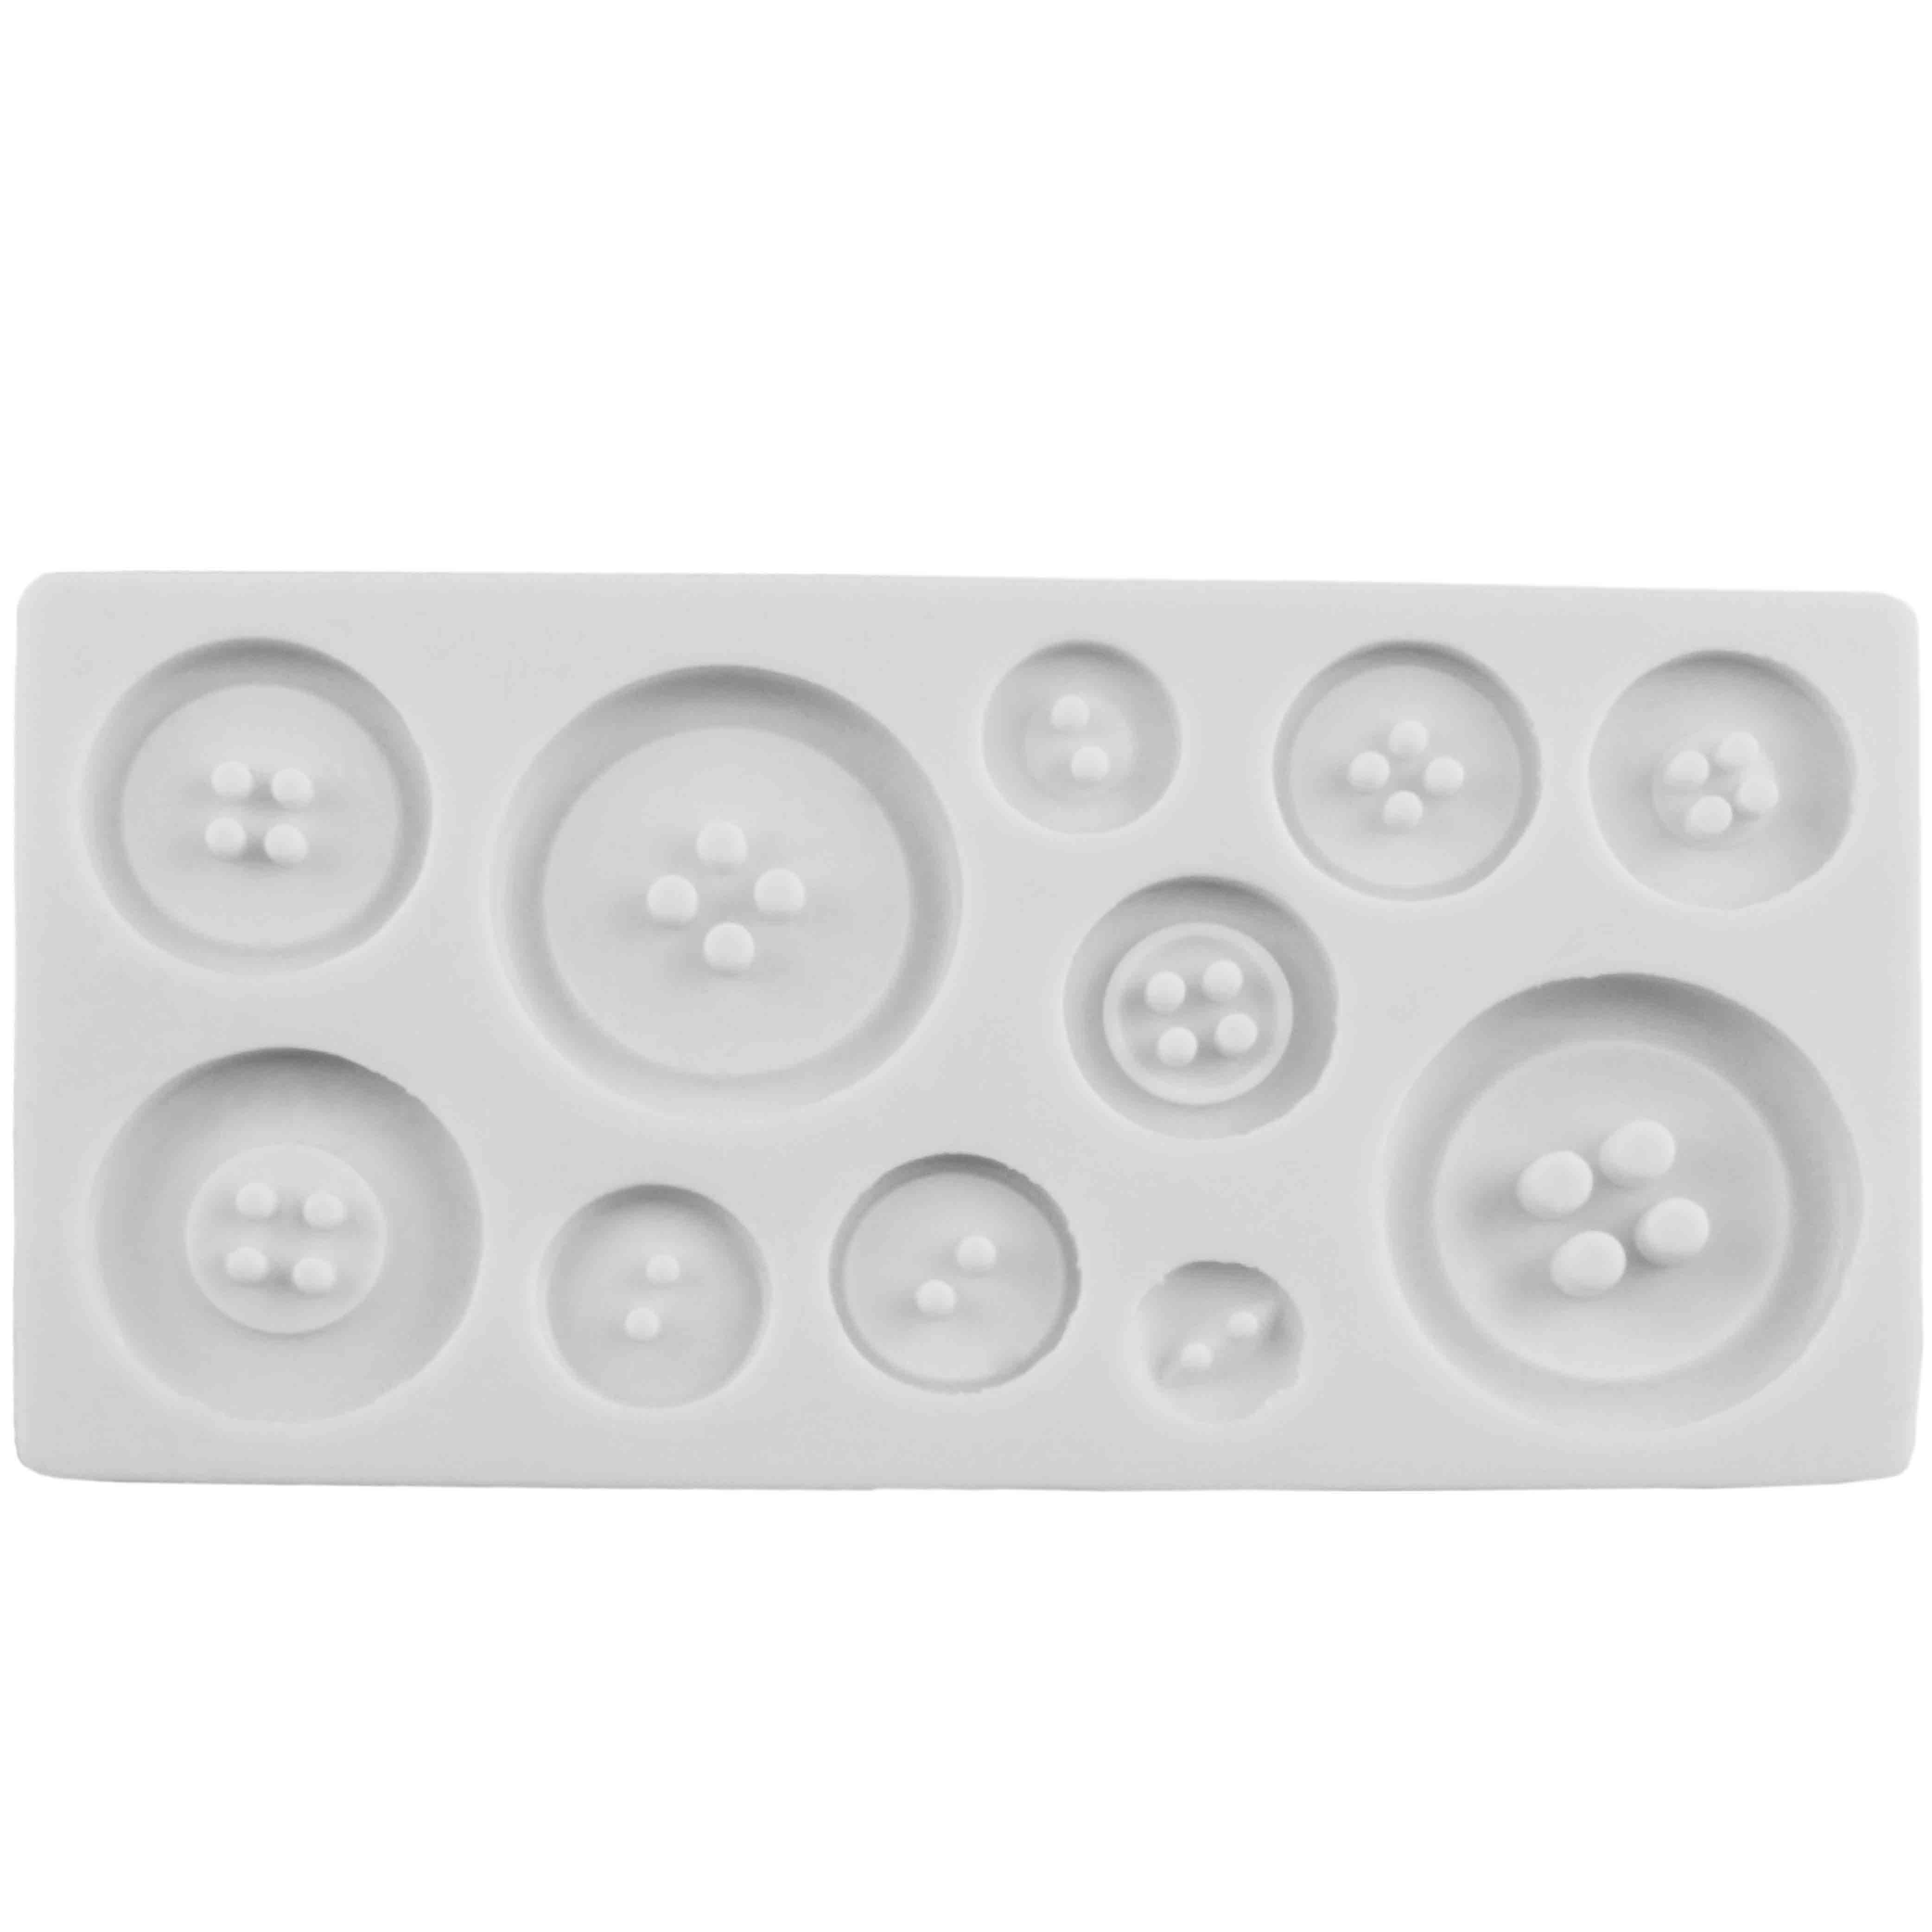 Plain Buttons Silicone Mold